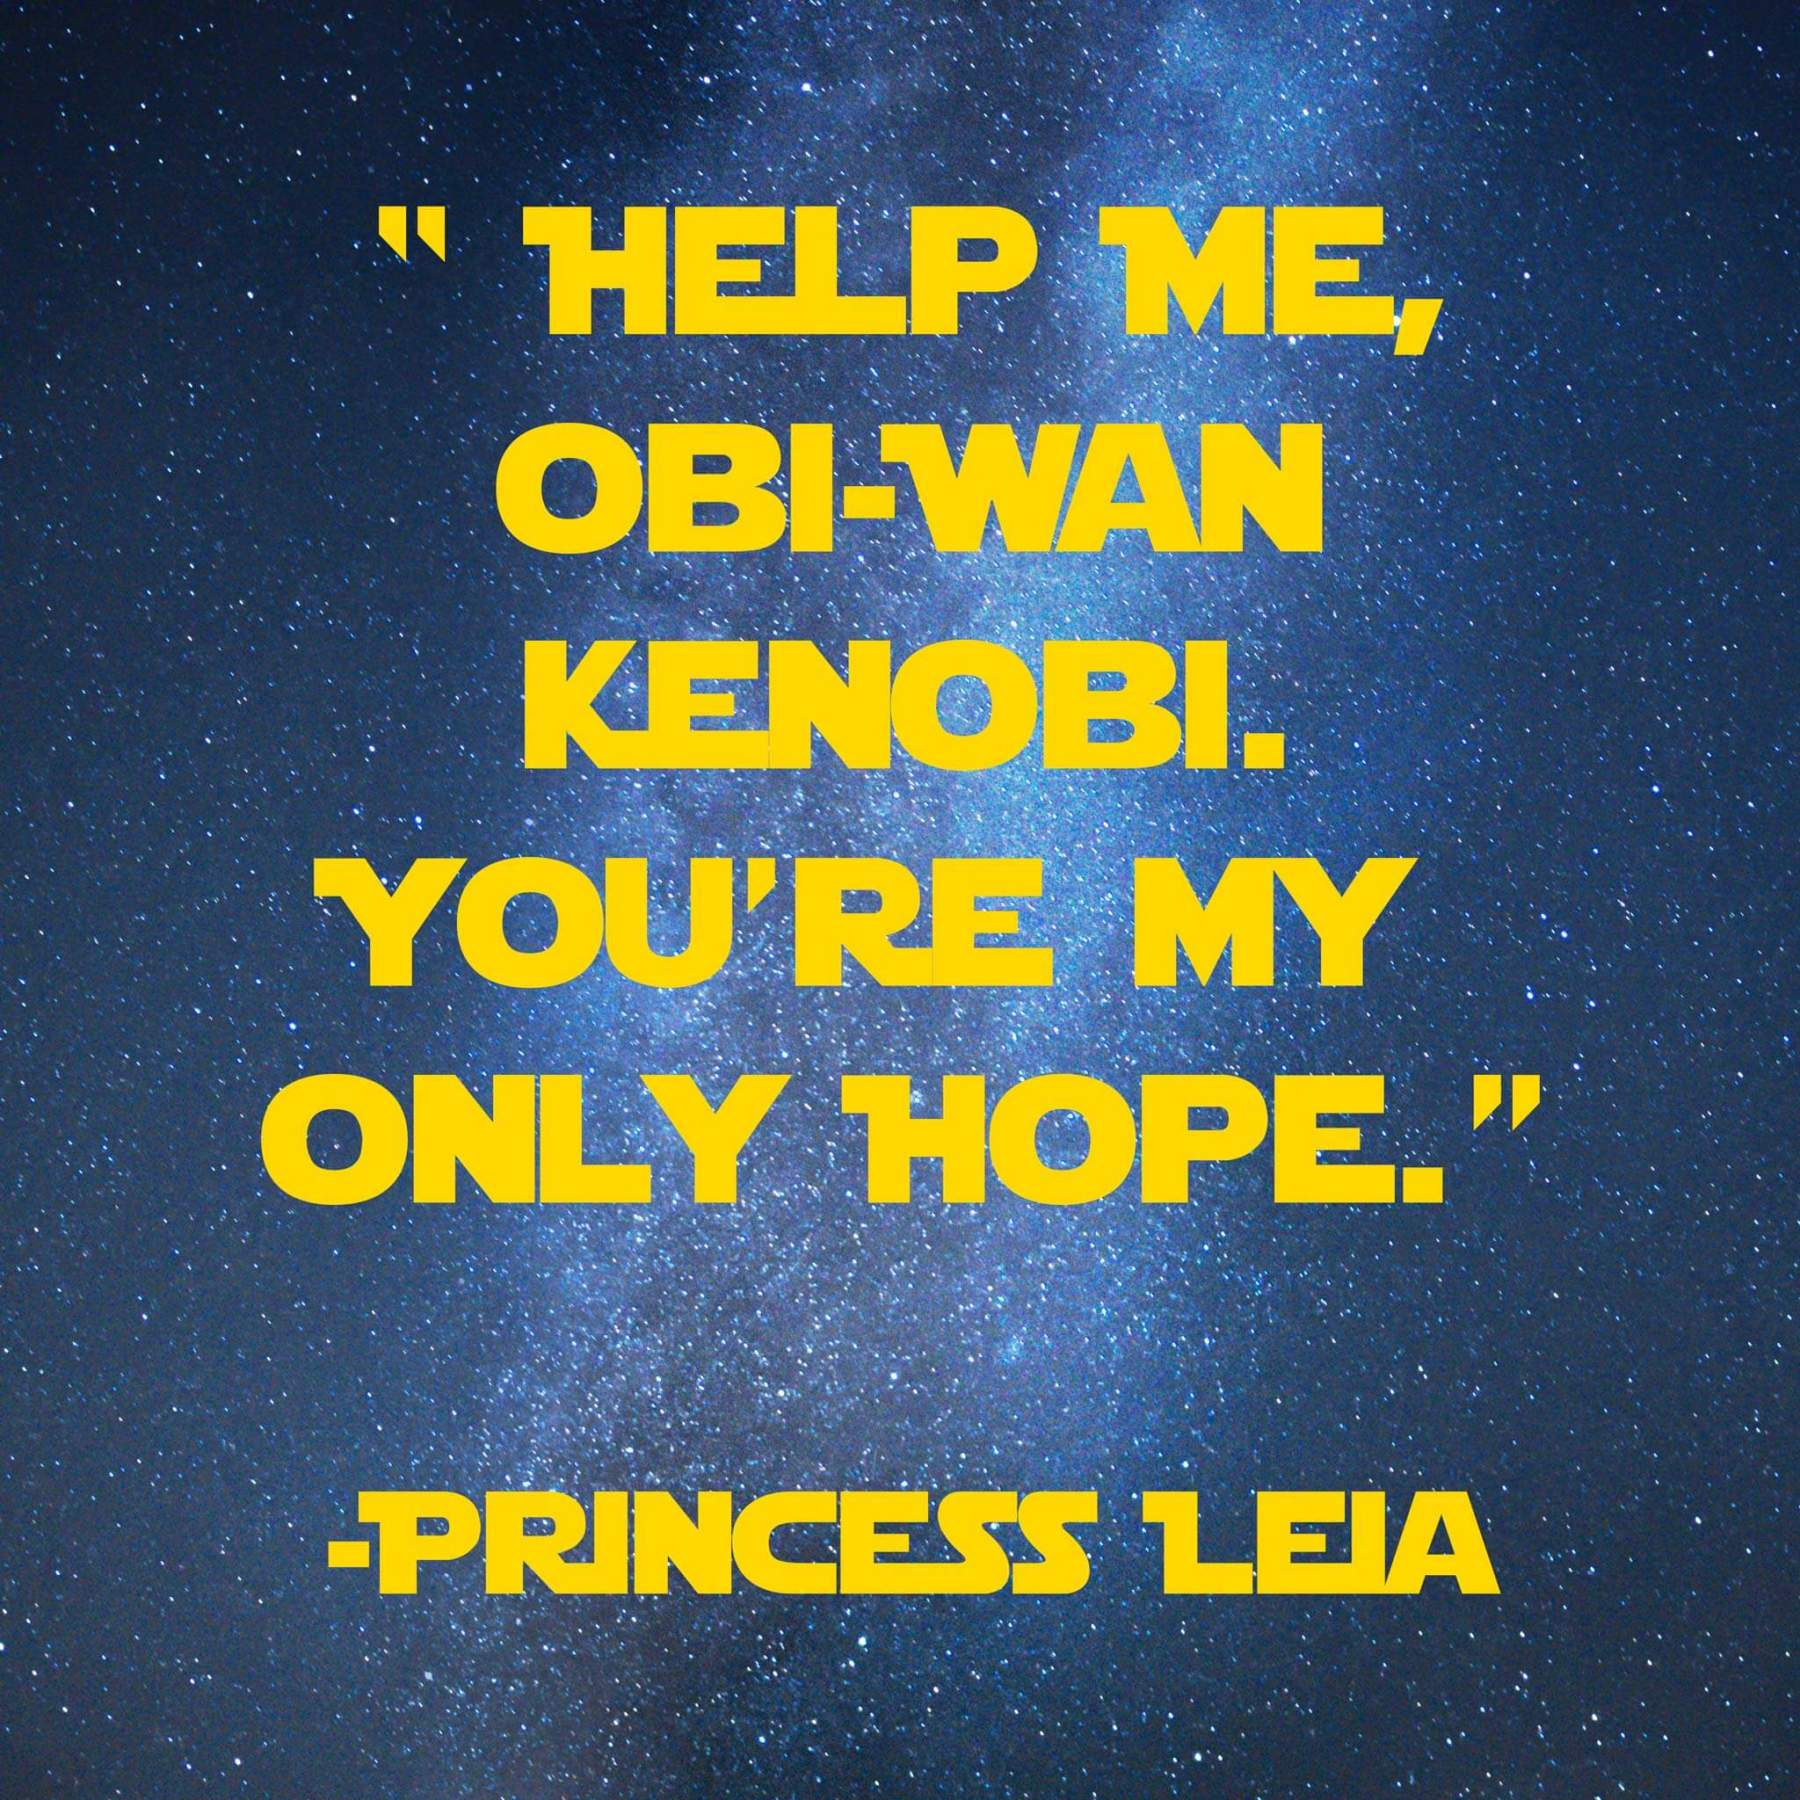 Help me Obi Wan Kenobi | 31 Memorable Star Wars Quotes for Geeks